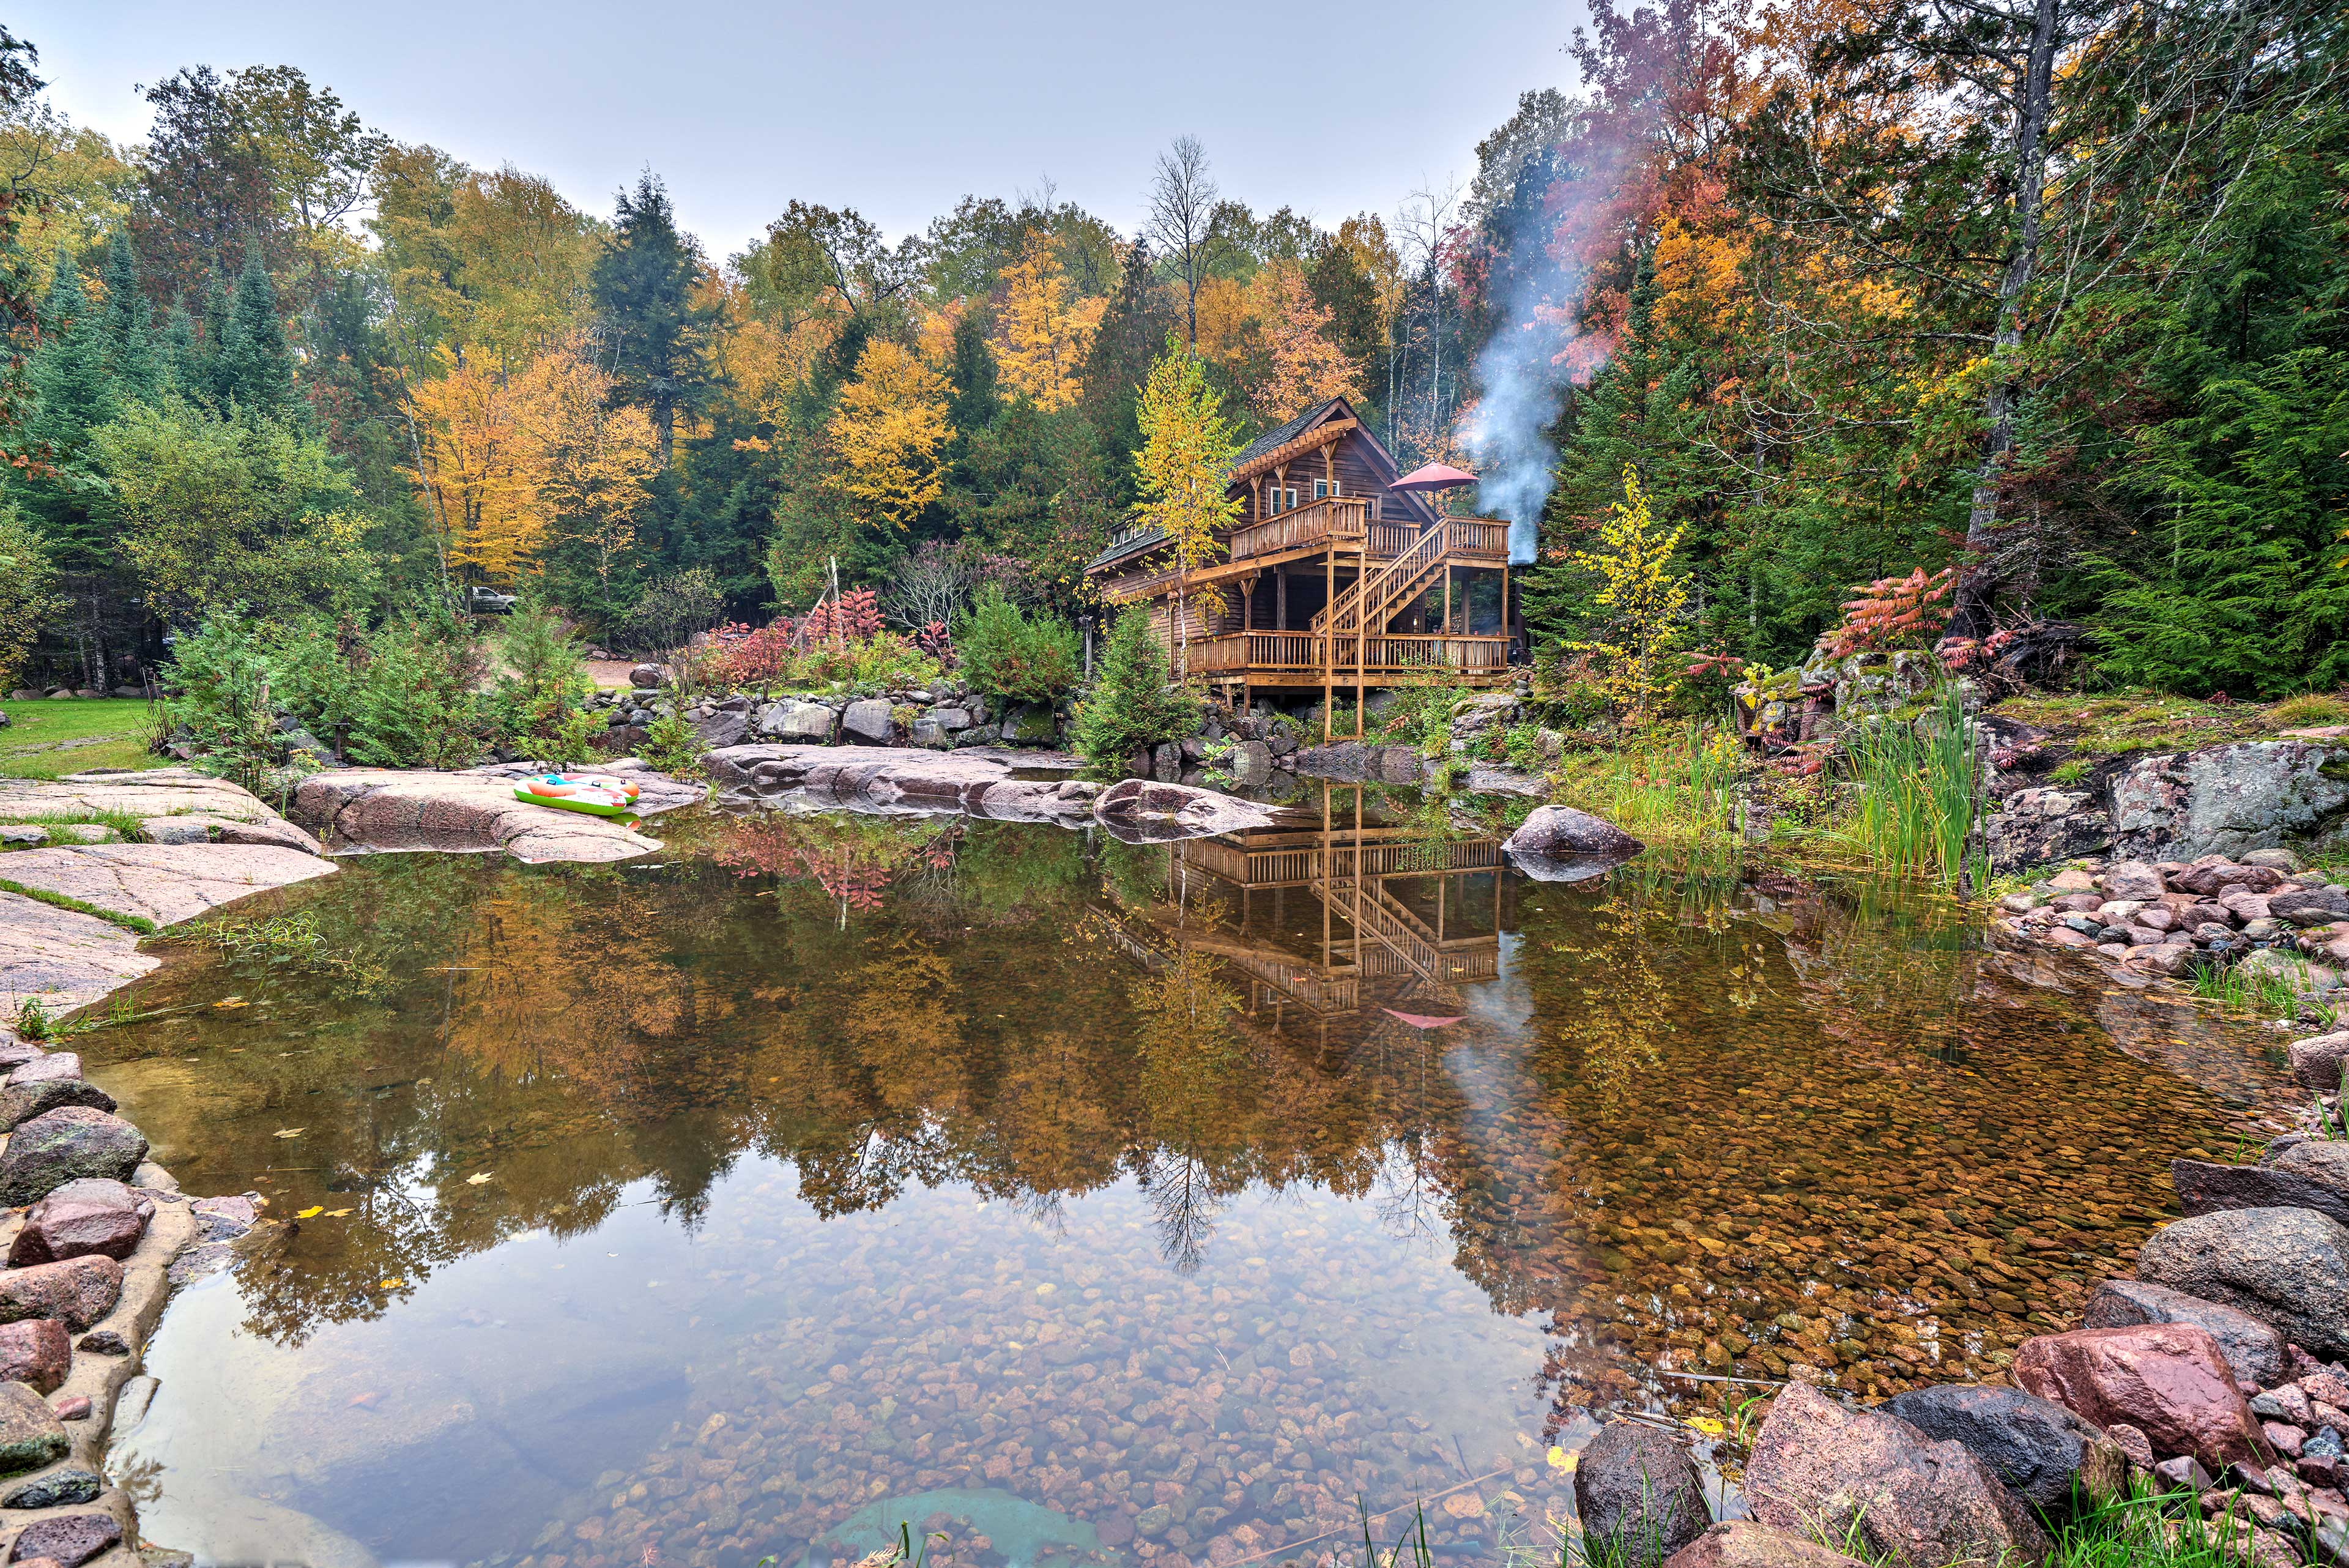 Mountain Vacation Rental | 3 BR | 1 BA | 1,500 Sq Ft | Cabin